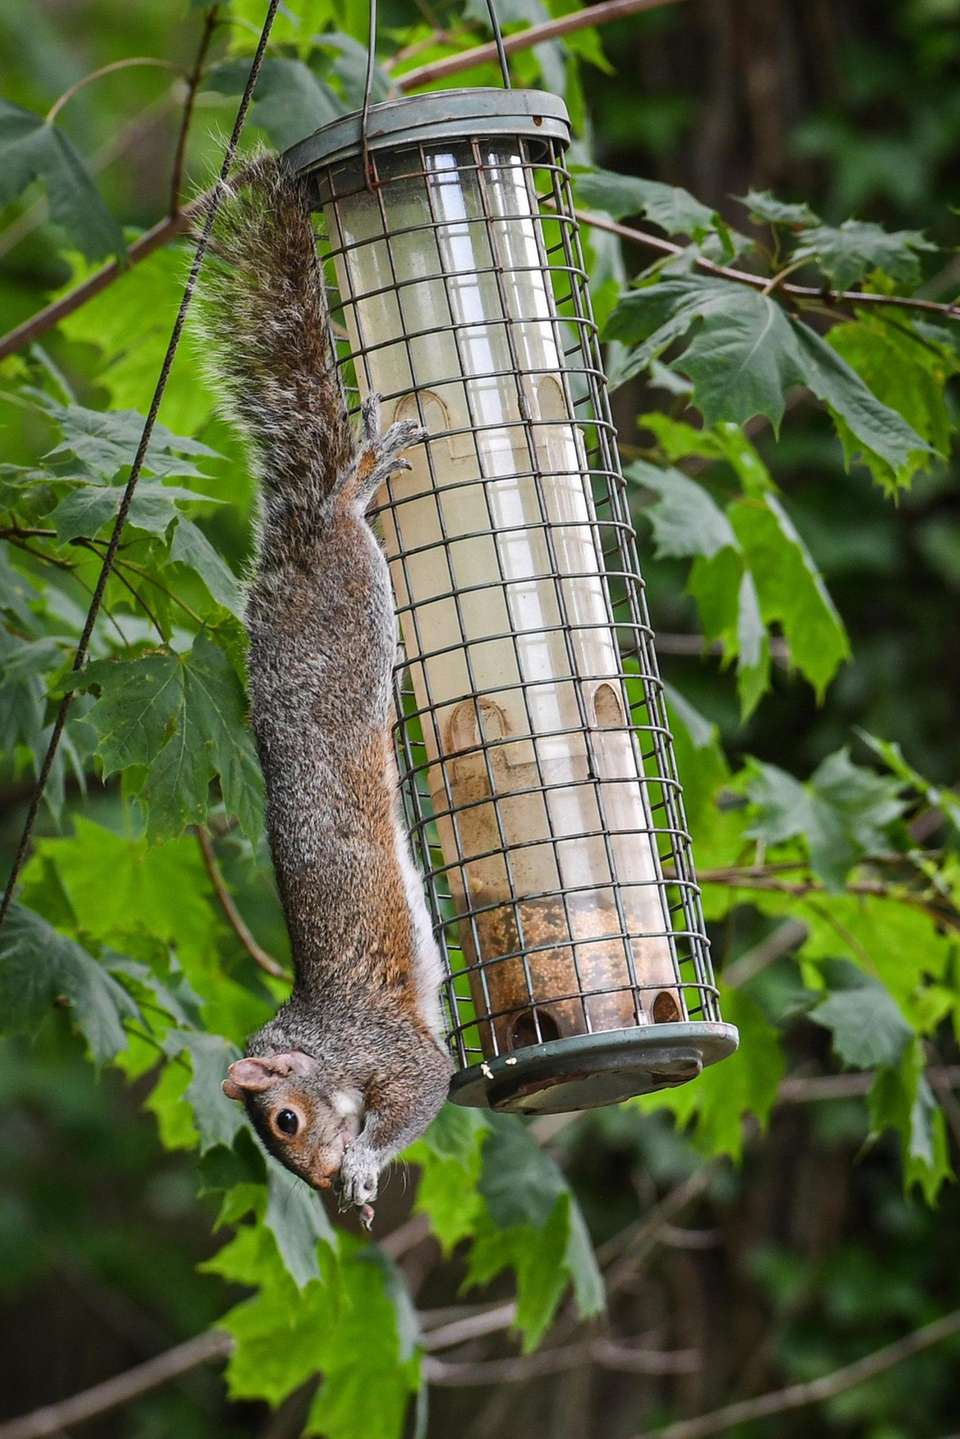 A squirrel eats from a bird feeder on